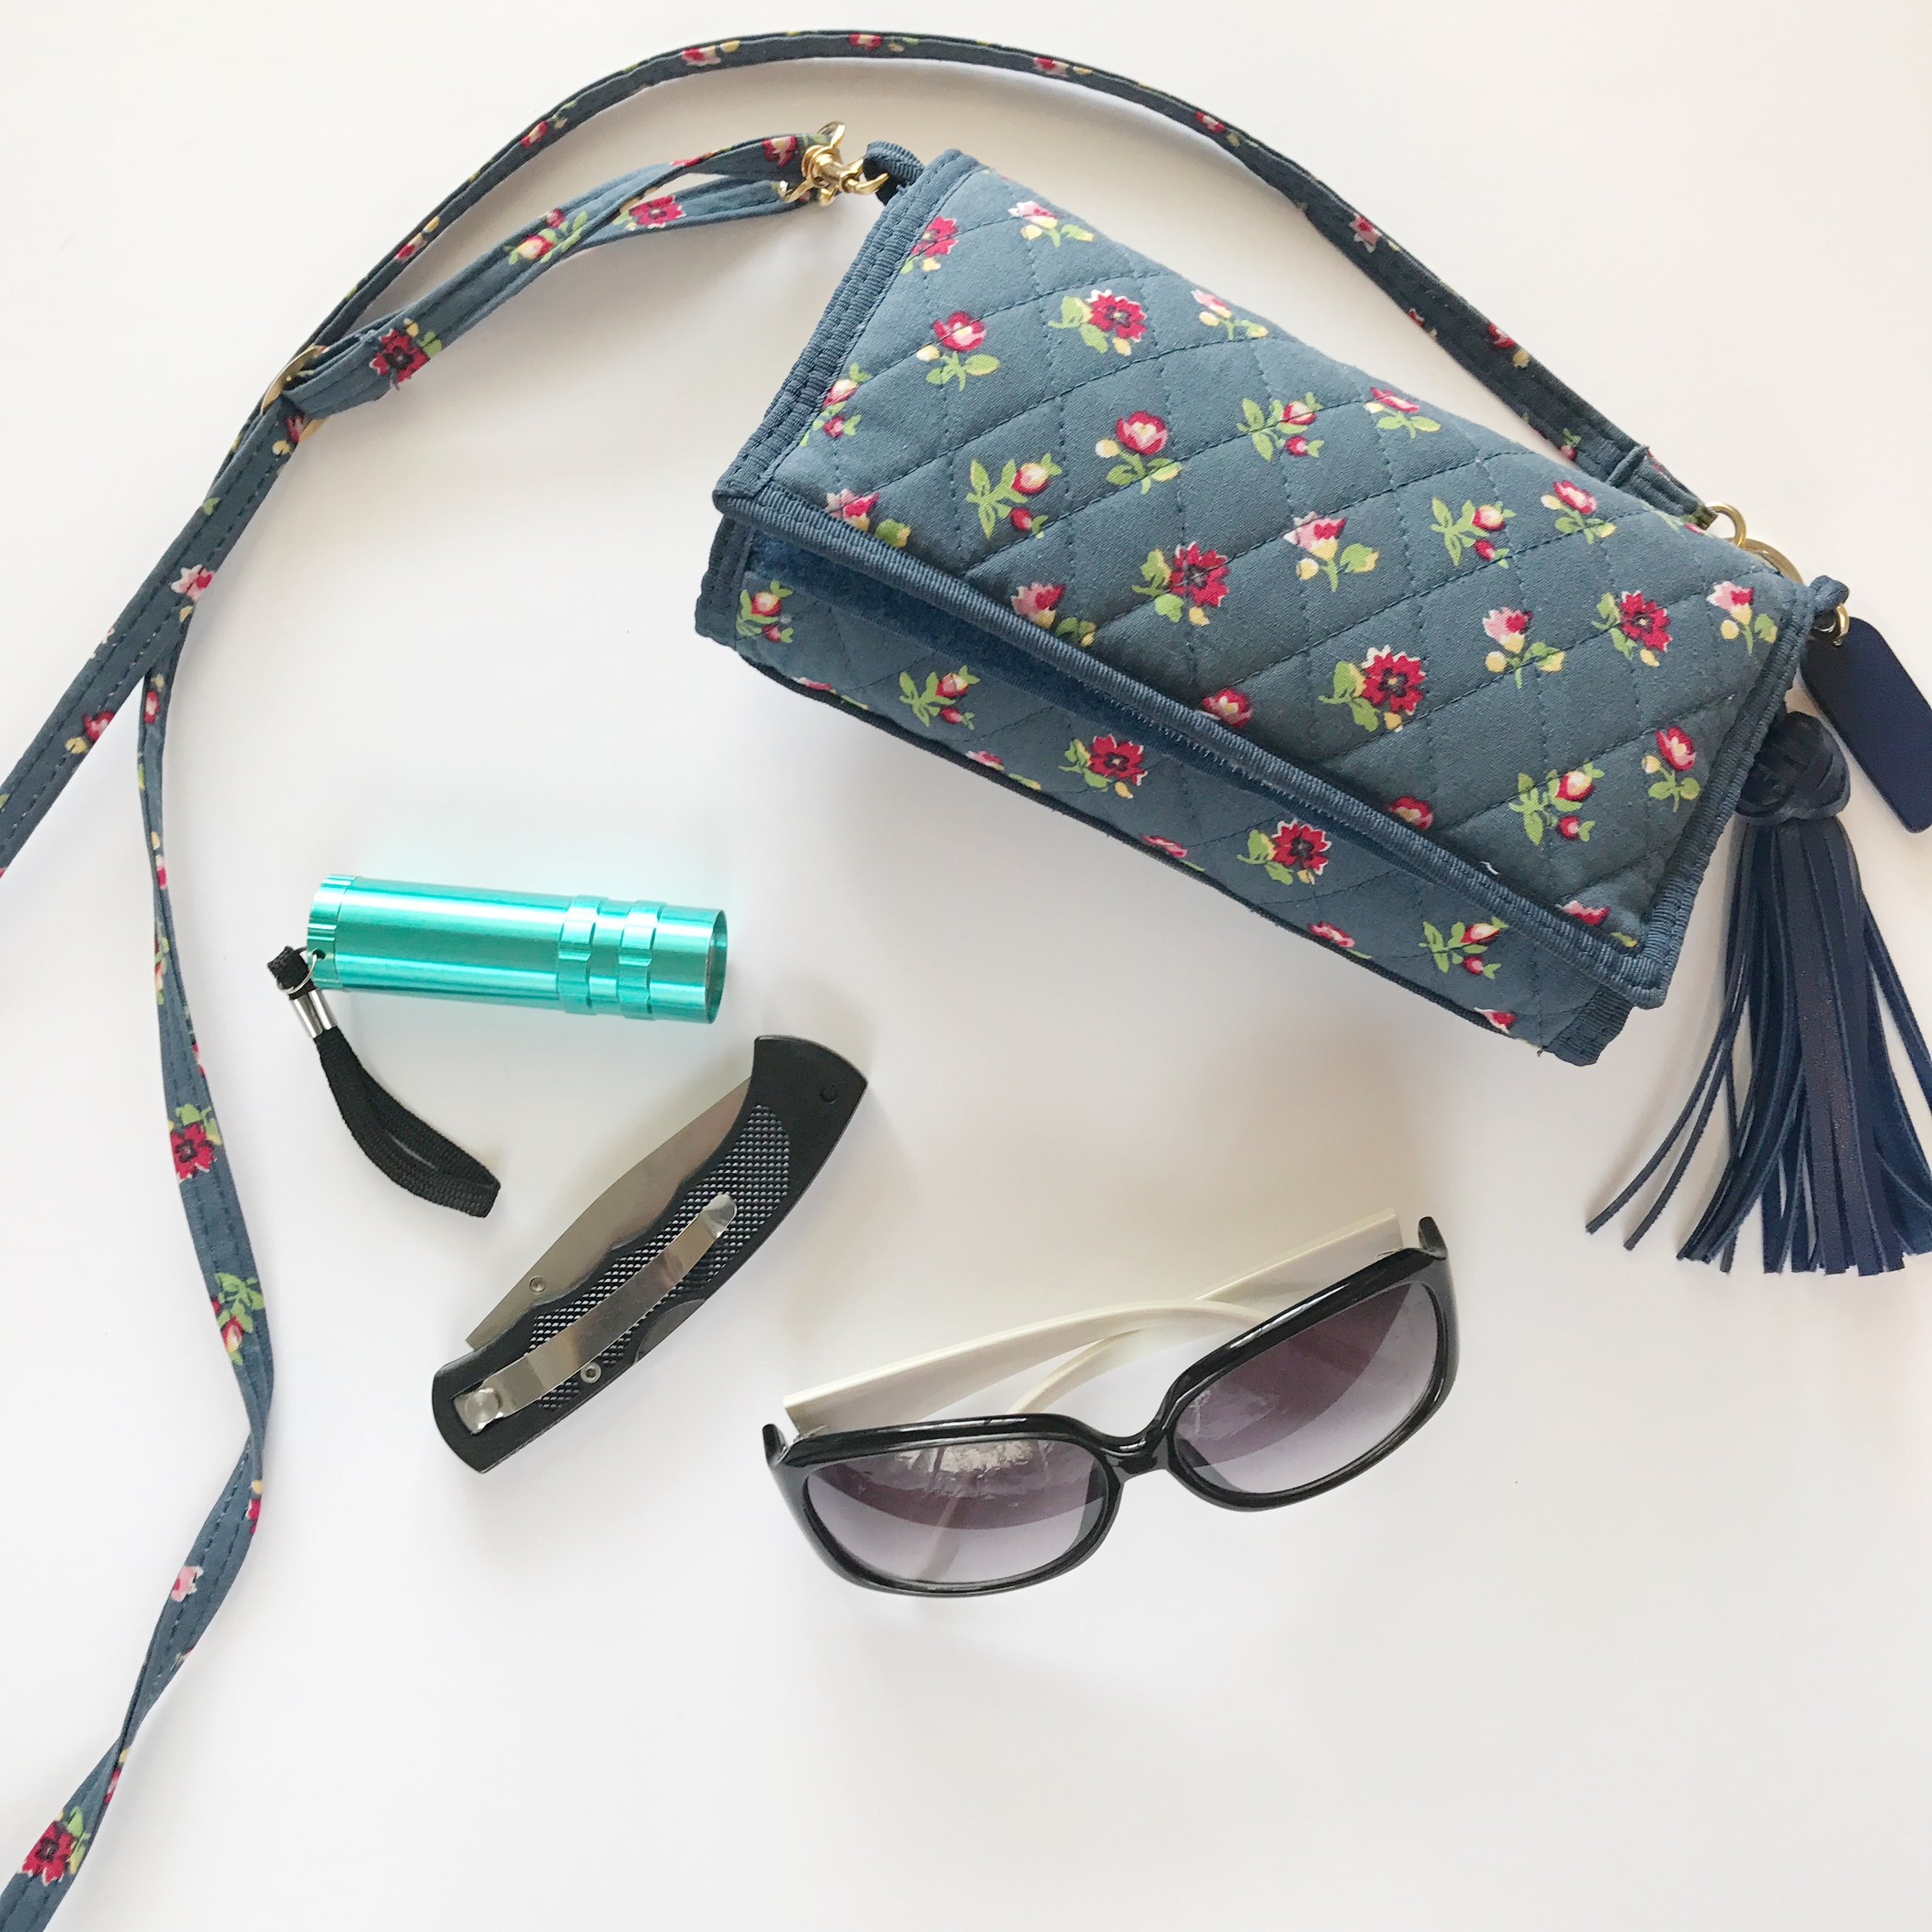 Wallet Purse (similar to this  Vera Bradley  one)   Flashlight and Pocket Knife